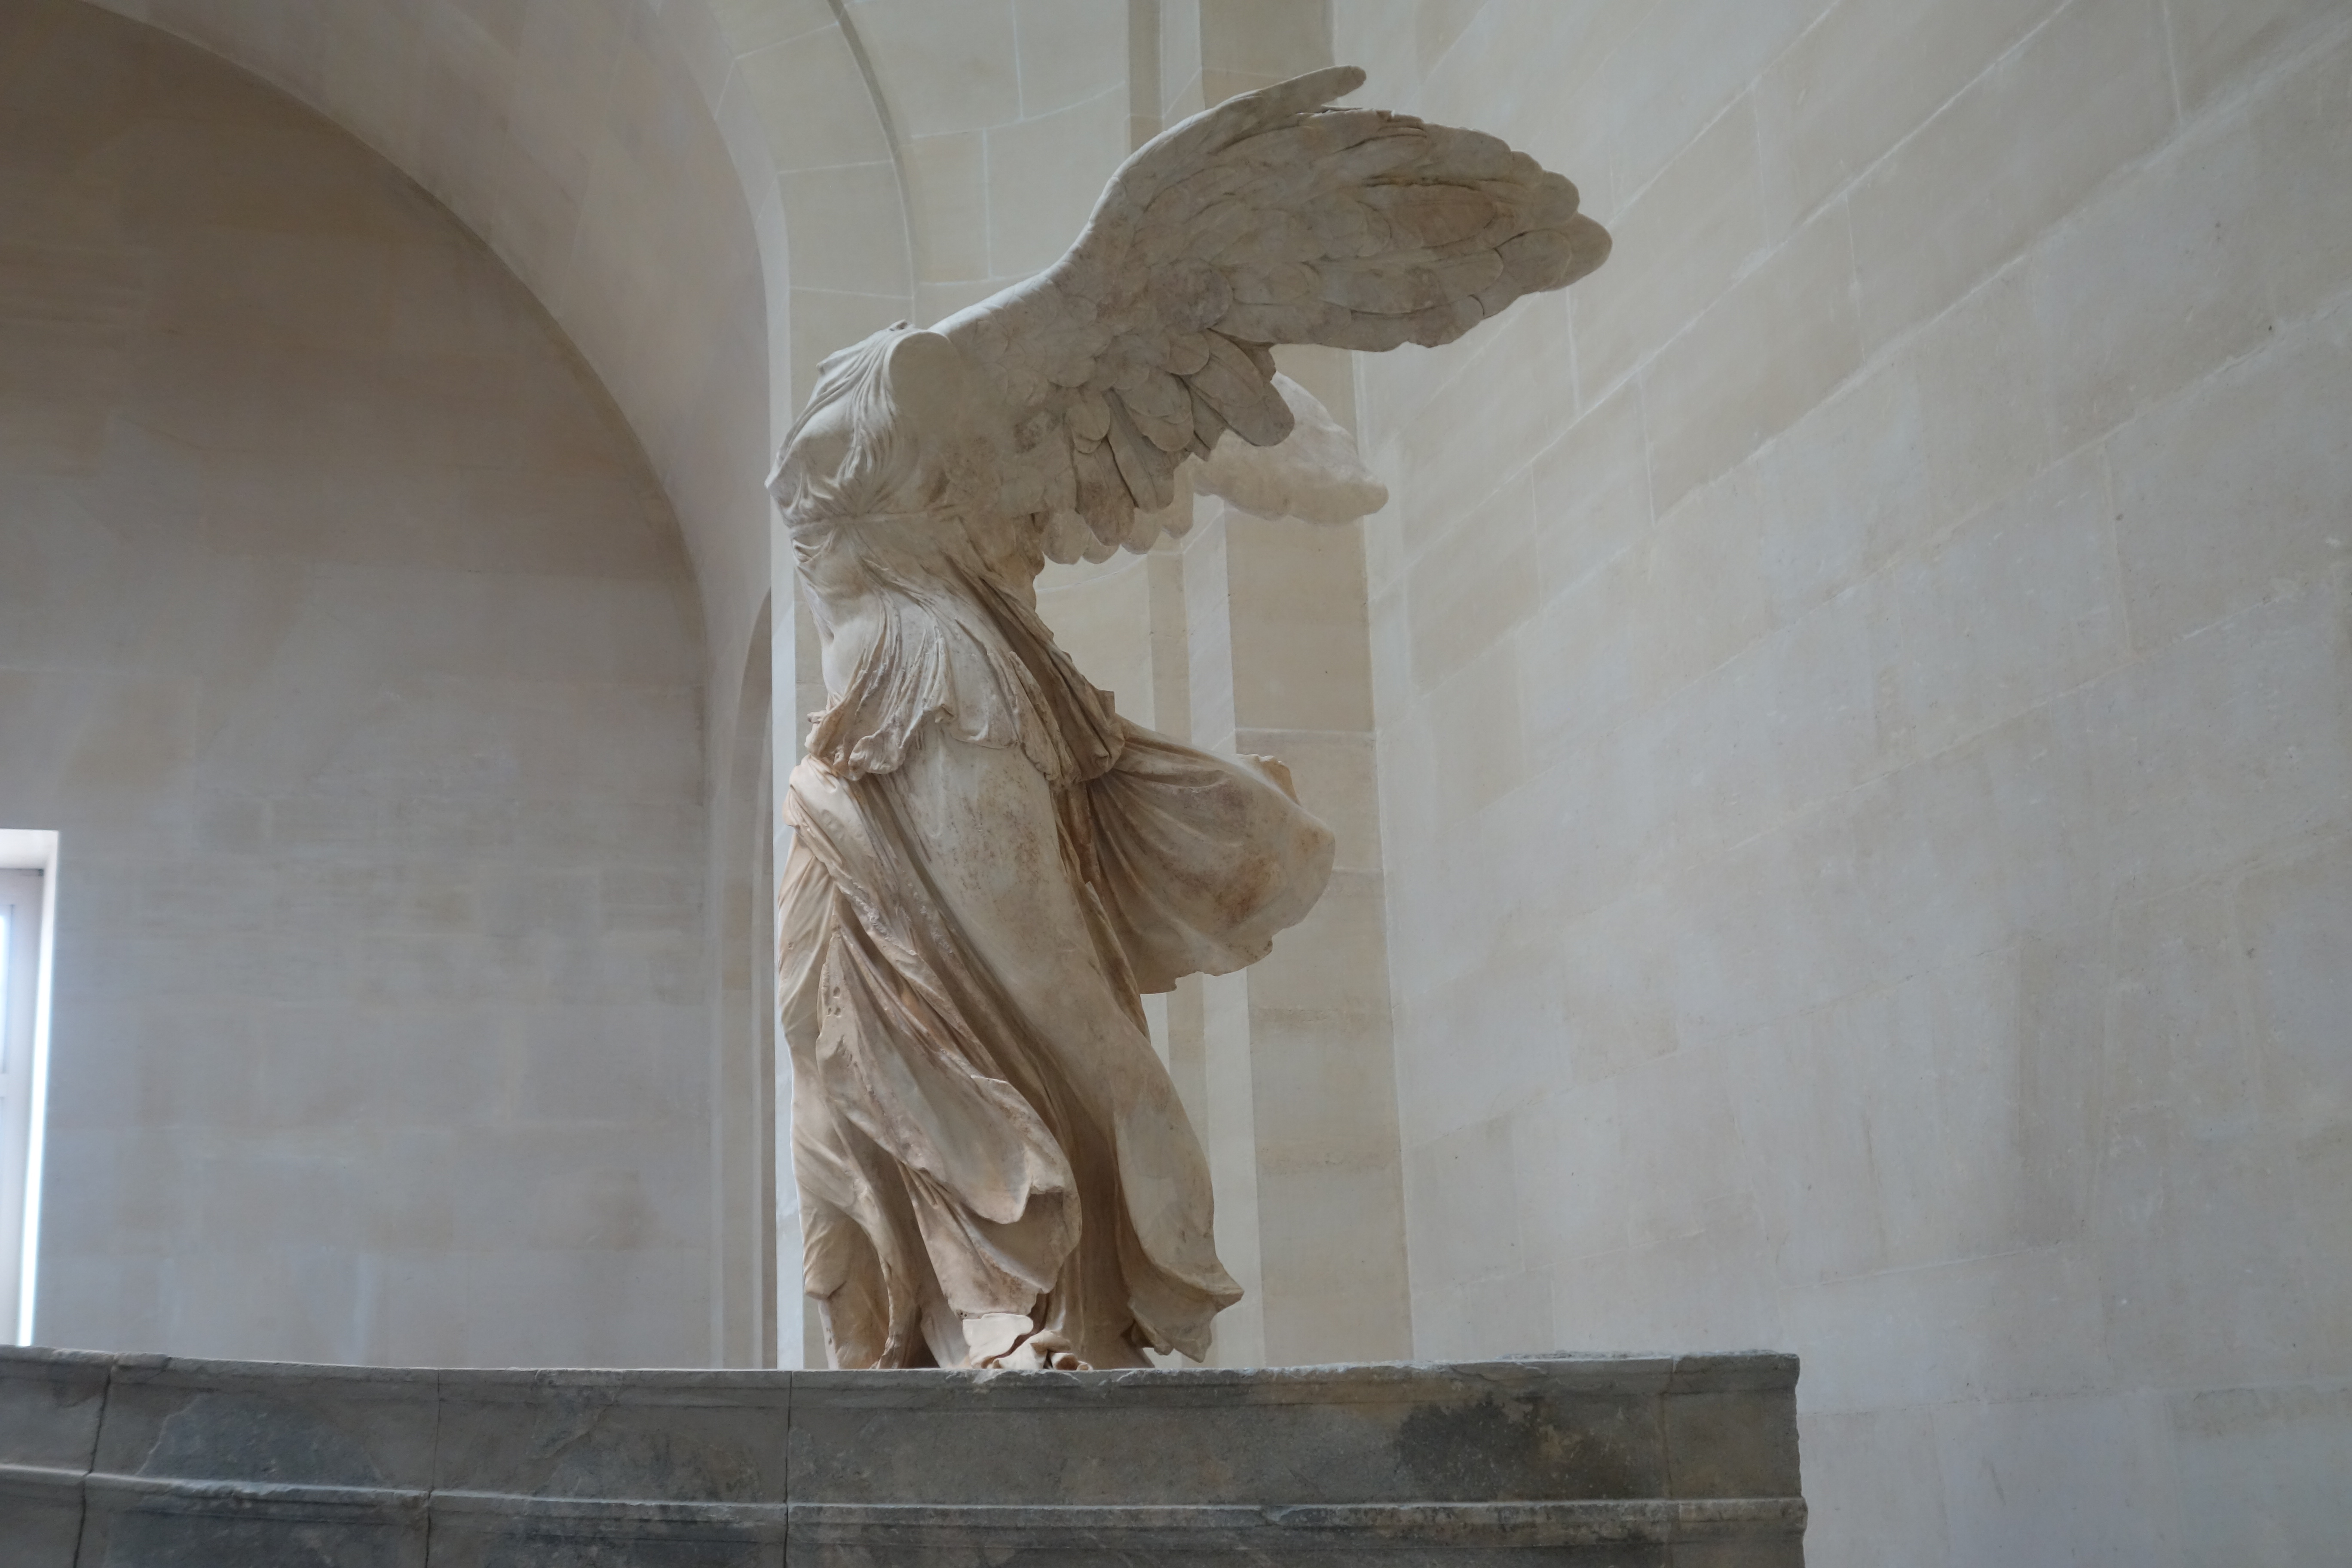 200 BC / Winged Victory of Samothrace, Louvre